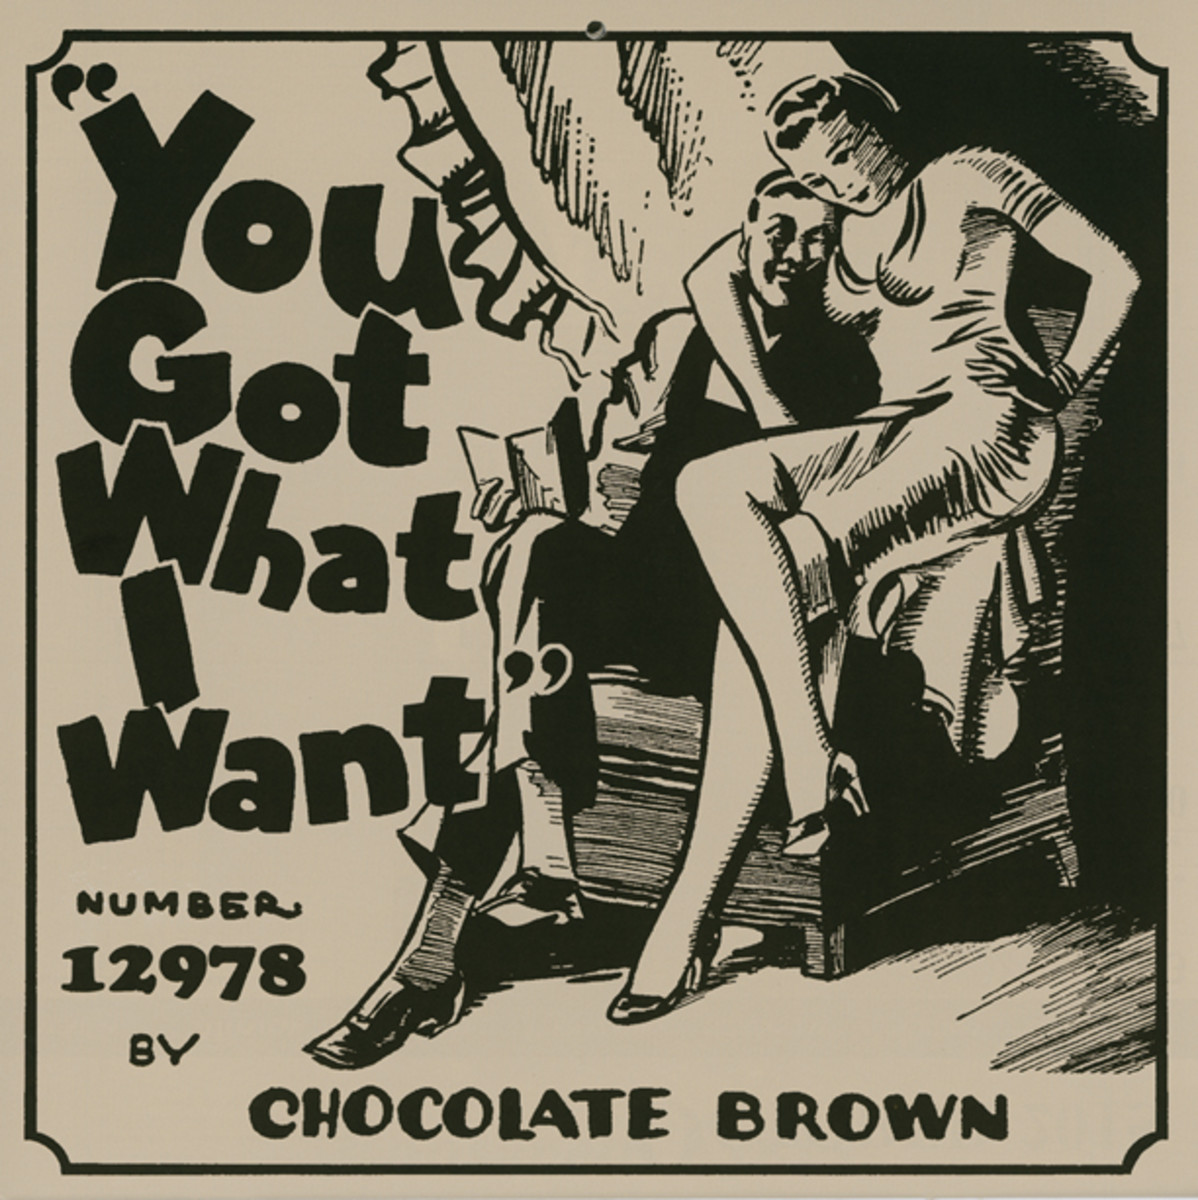 Chocolate Brown You Got What I Want Paramount 12978